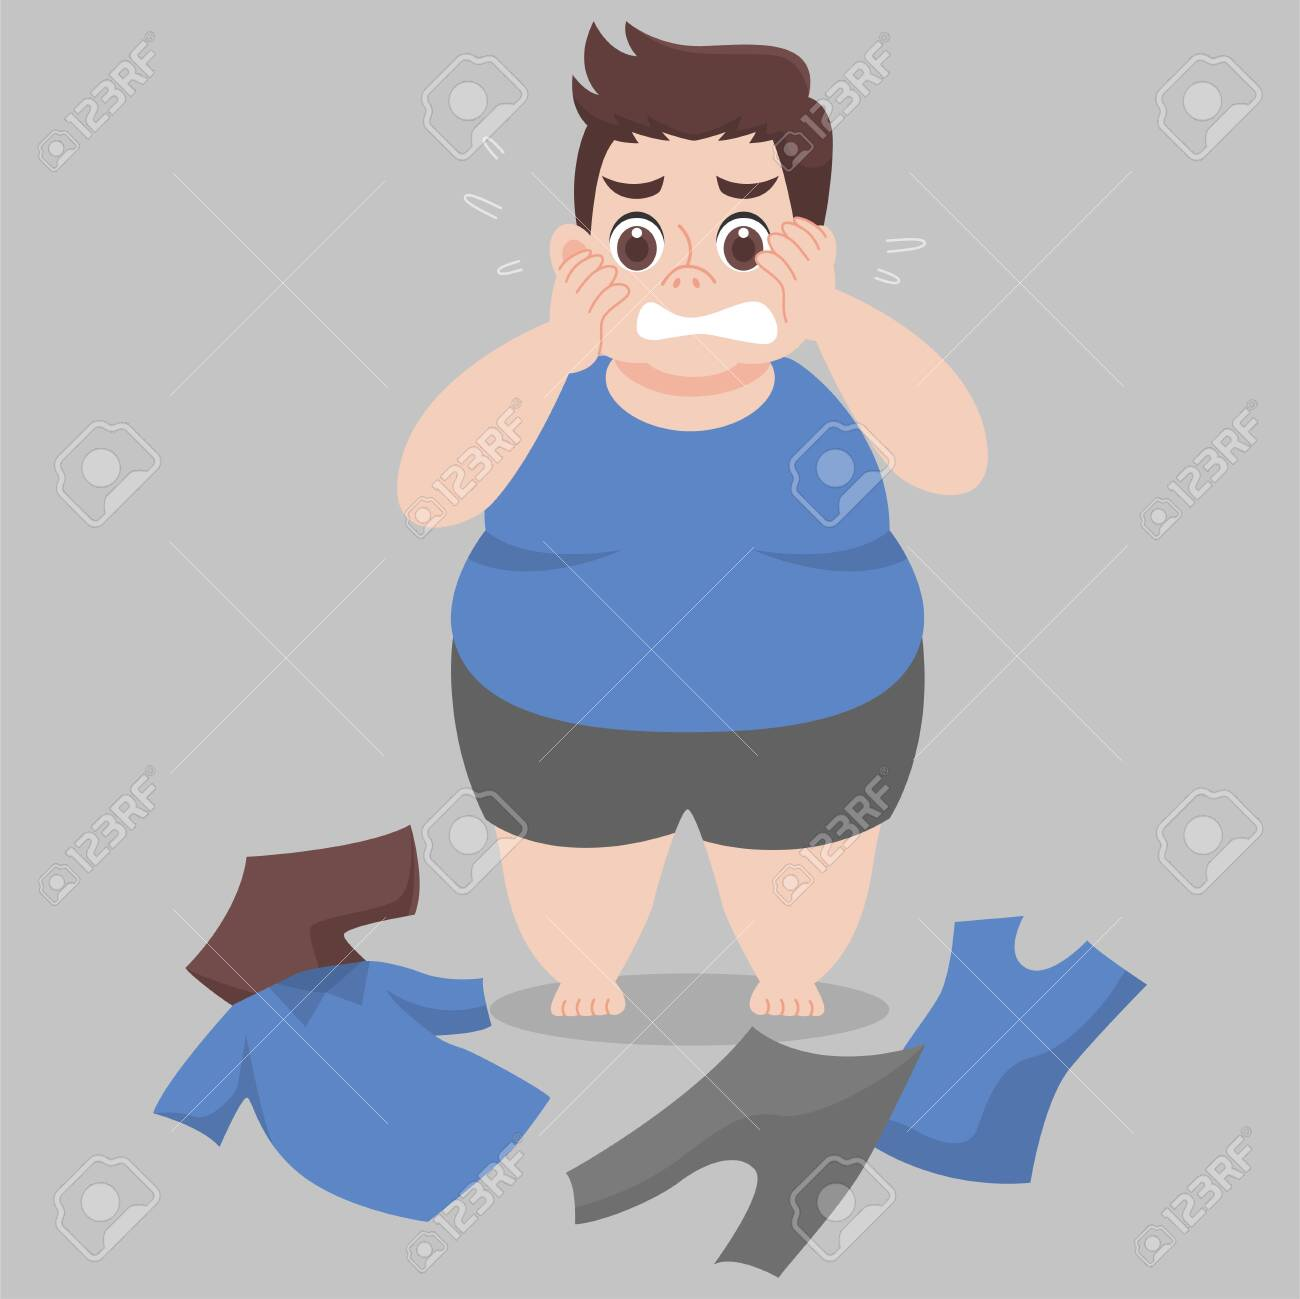 Big Fat Man cannot wearing her clothes because she is too fat,tight, fit, too small, body over weight, sad, afraid, unhappy, big size, diet cartoon lose weight, Lifestyle healthy Healthcare concept - 132024720